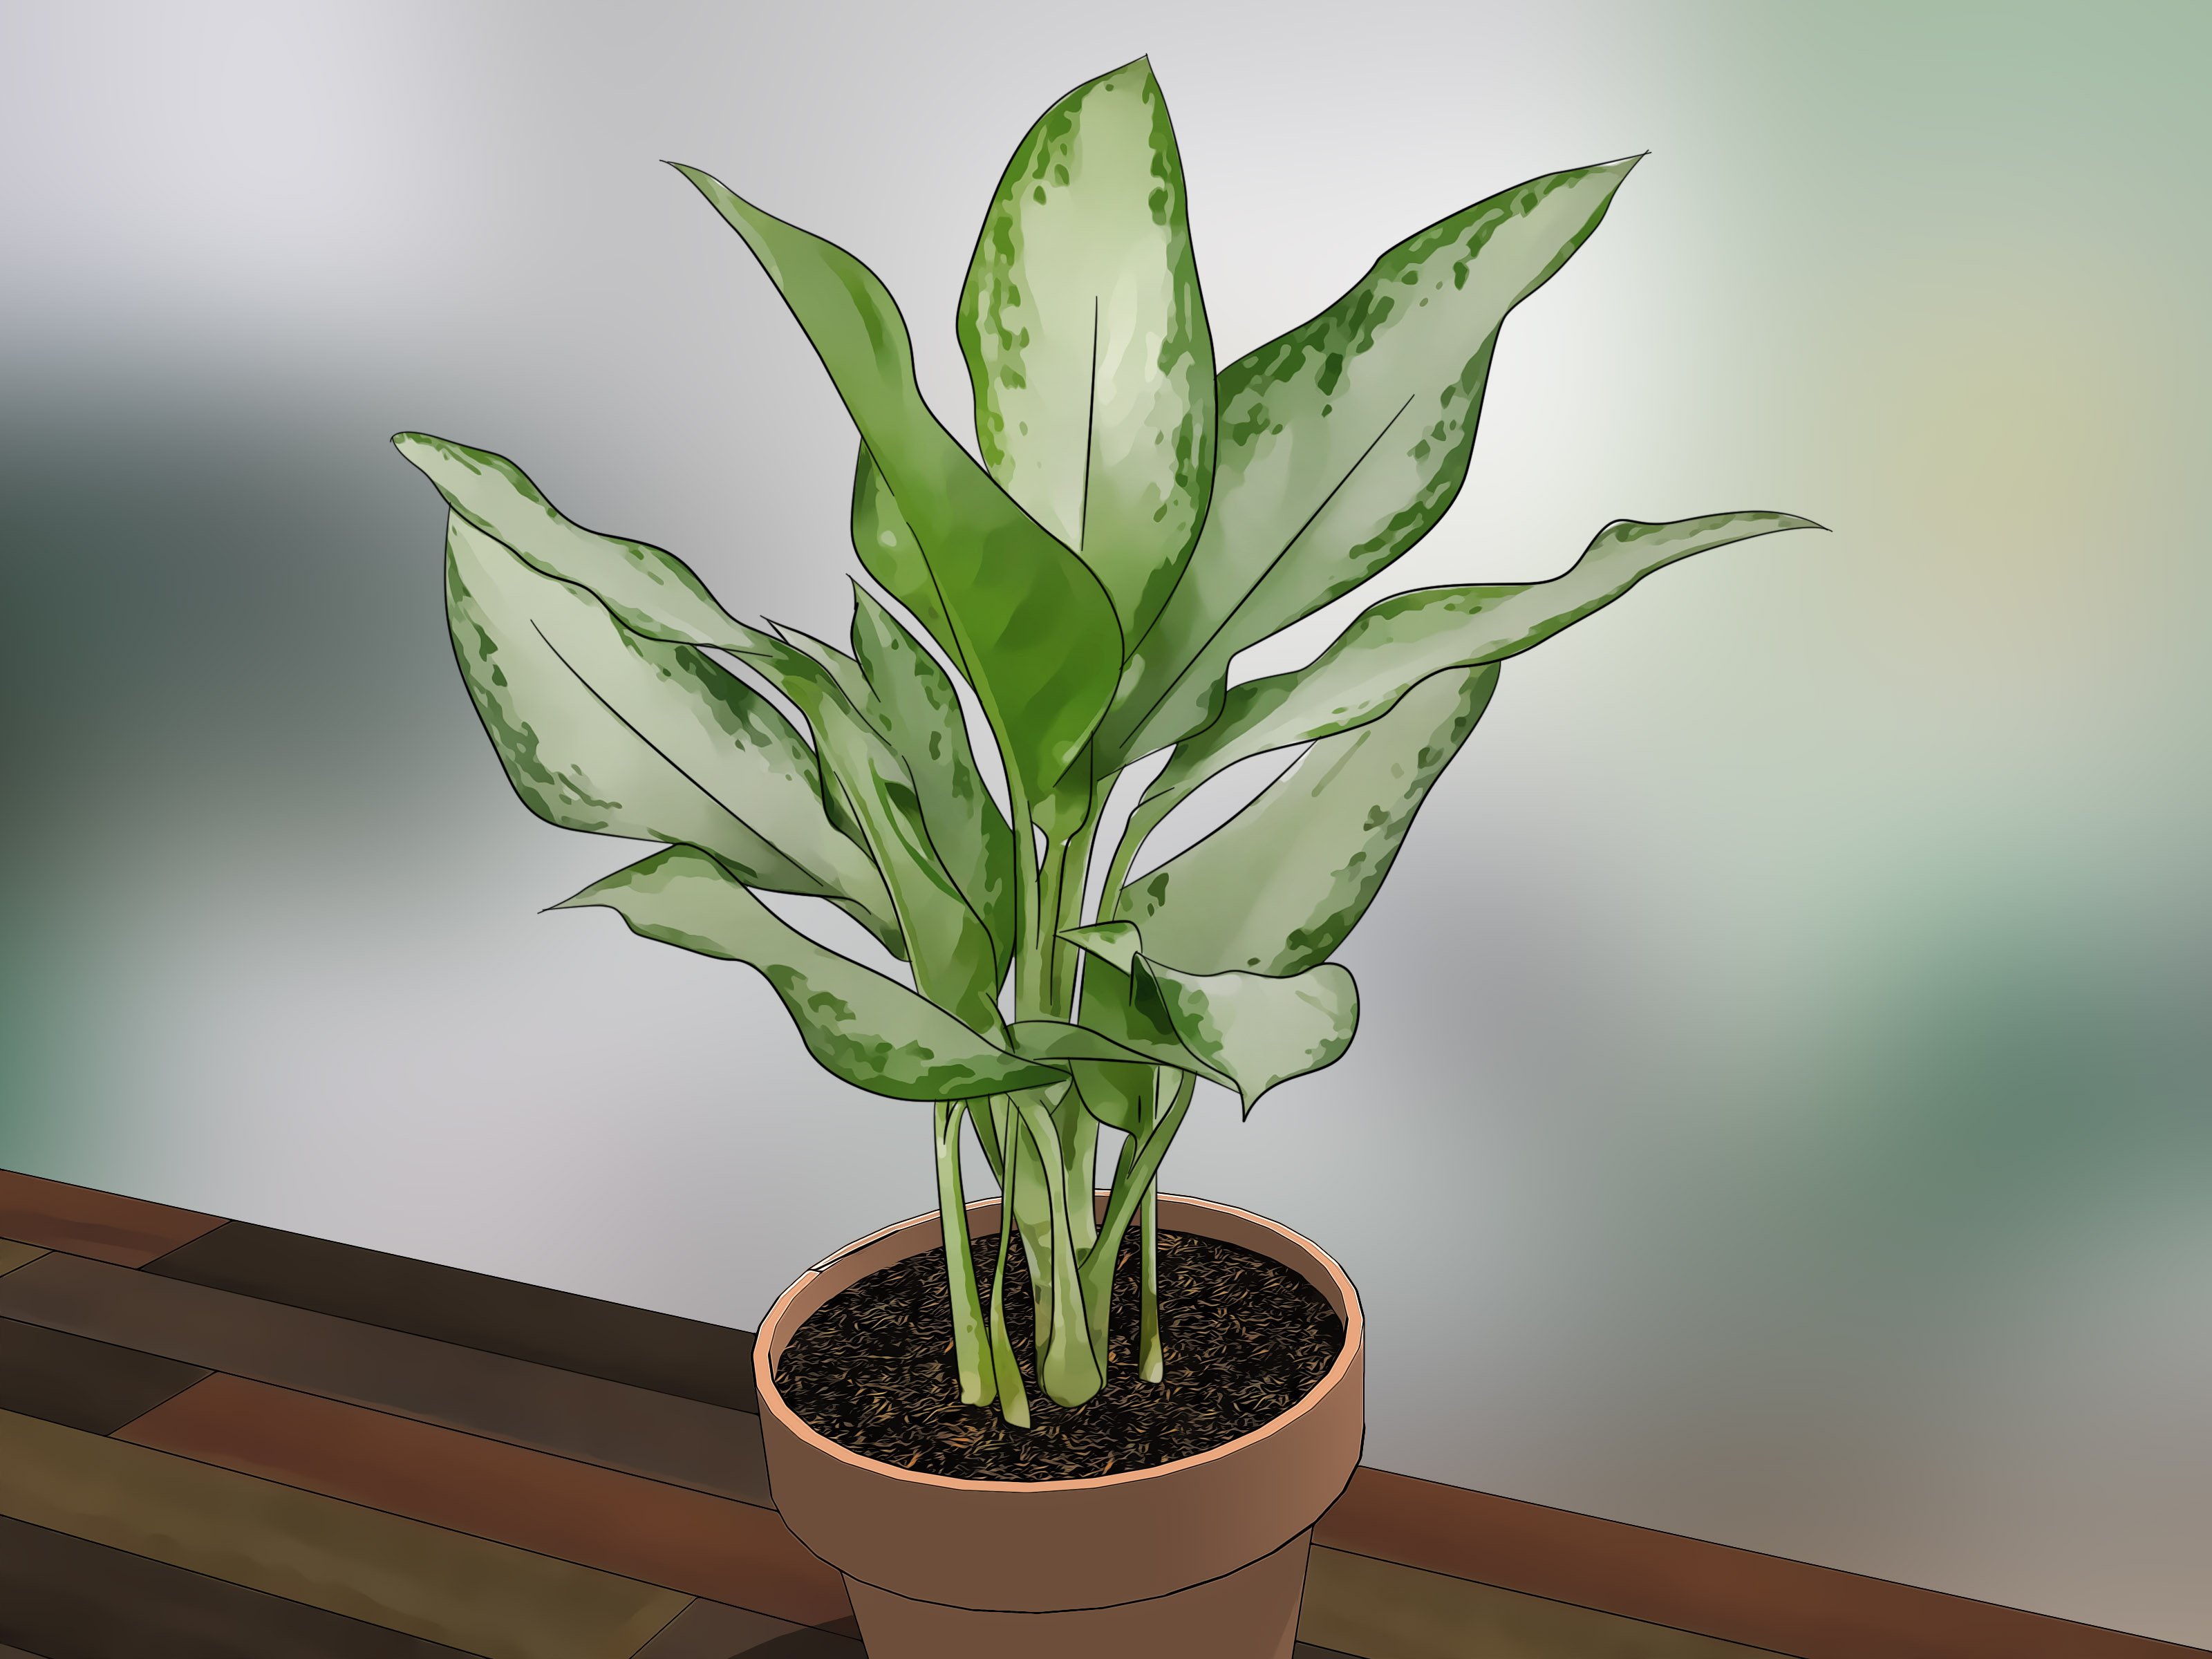 How To Care For Indoor Plants: 15 Steps (with Pictures